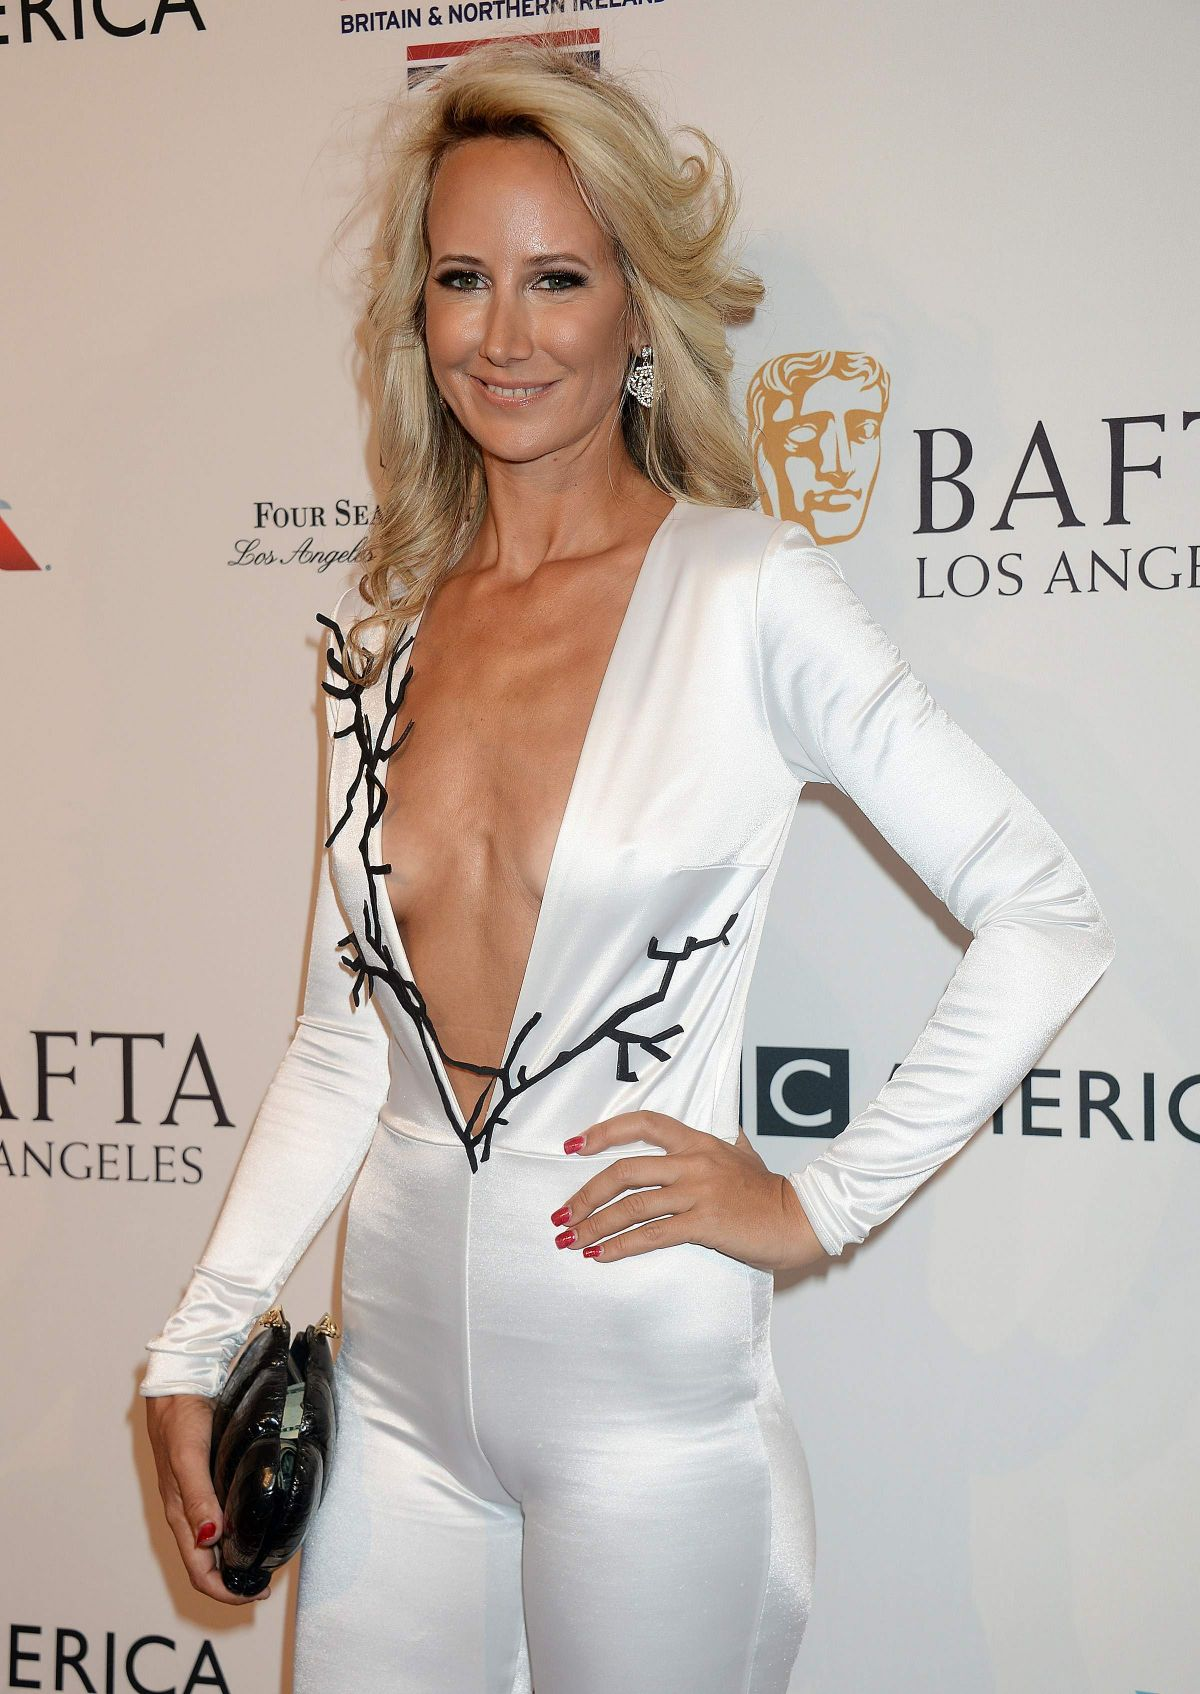 Lady Victoria Hervey nude photos 2019